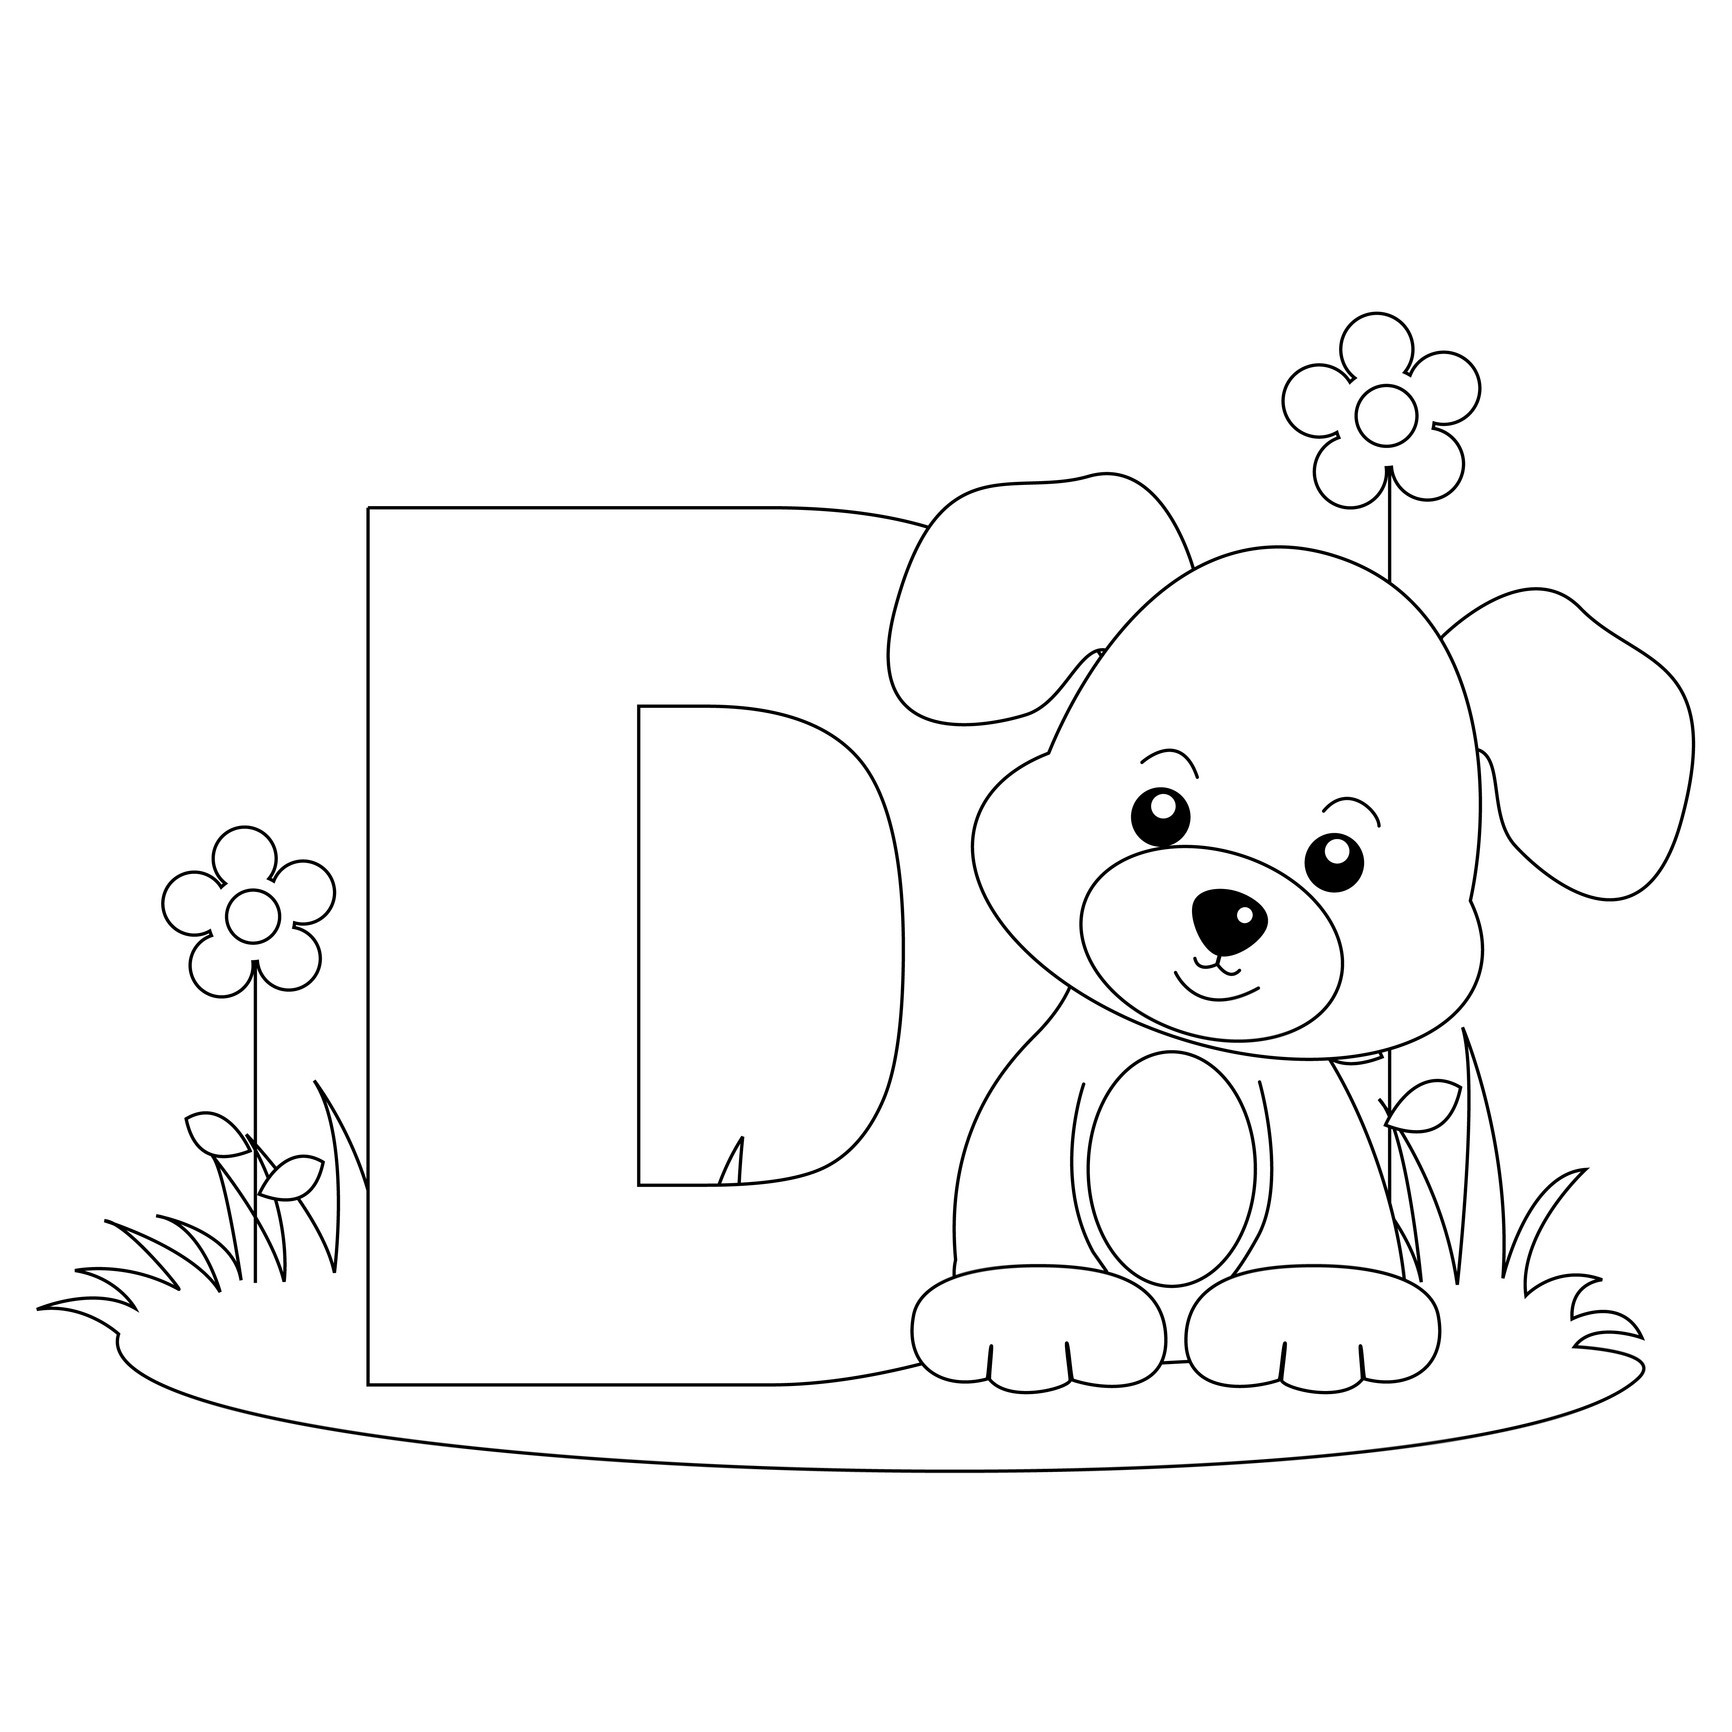 Coloring sheet letter d - Alphabet Coloring Pages Letter D